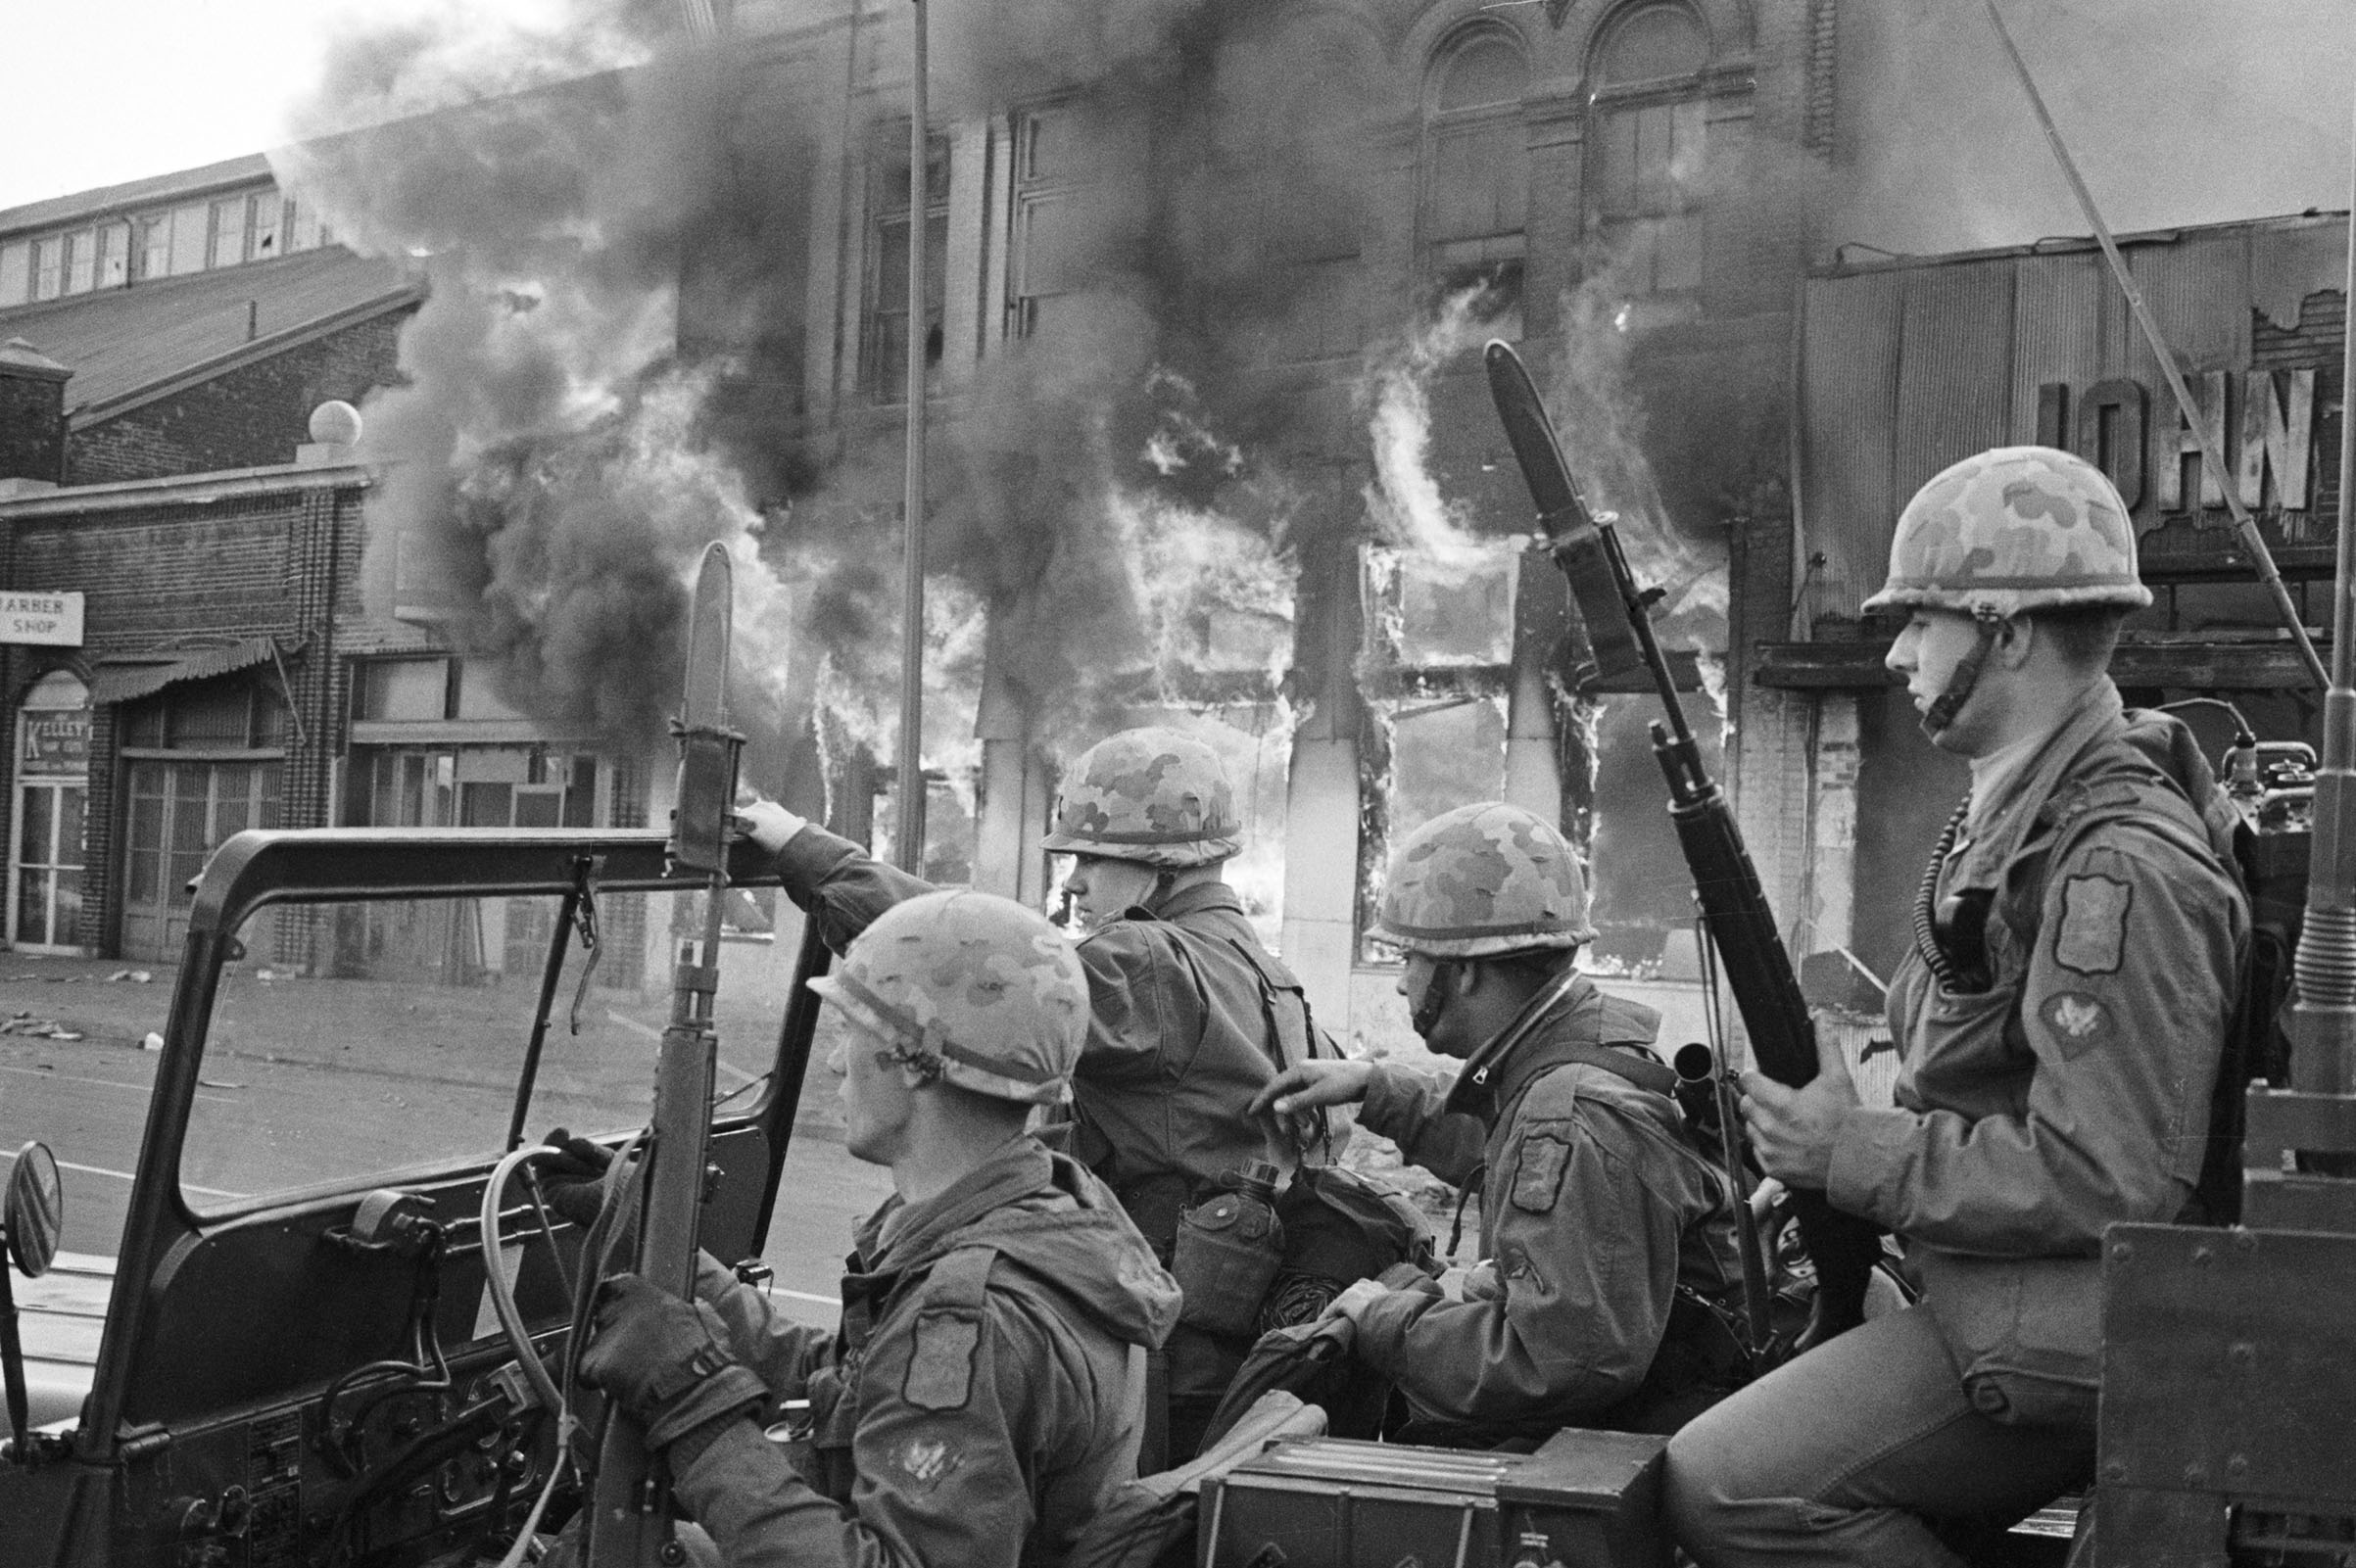 Troops were on patrol as protests and arson roiled Washington after the assassination of Martin Luther King Jr.